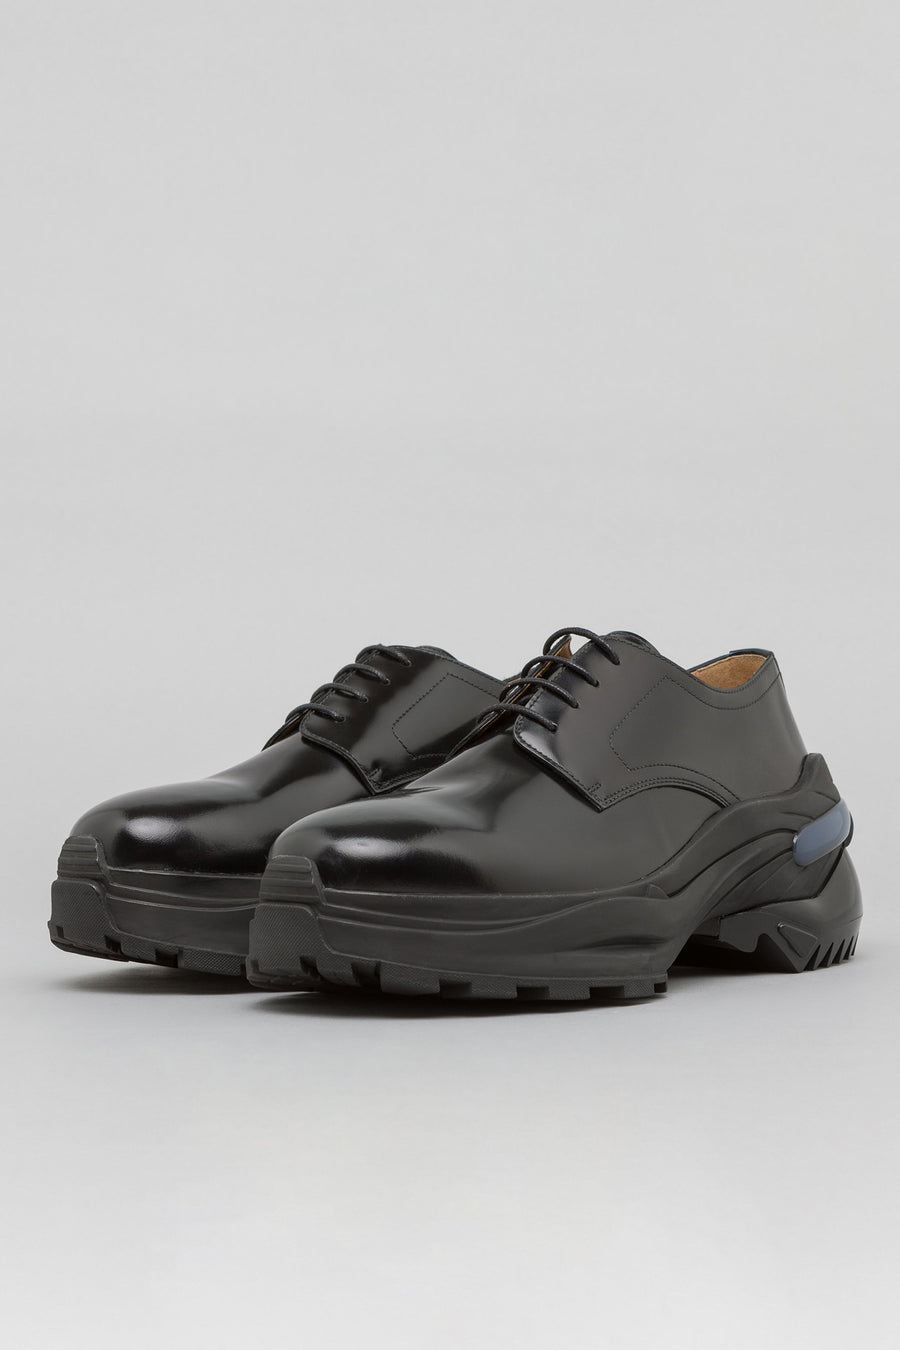 Maison Margiela Fusion Derby Shoe in Black Leather - Notre